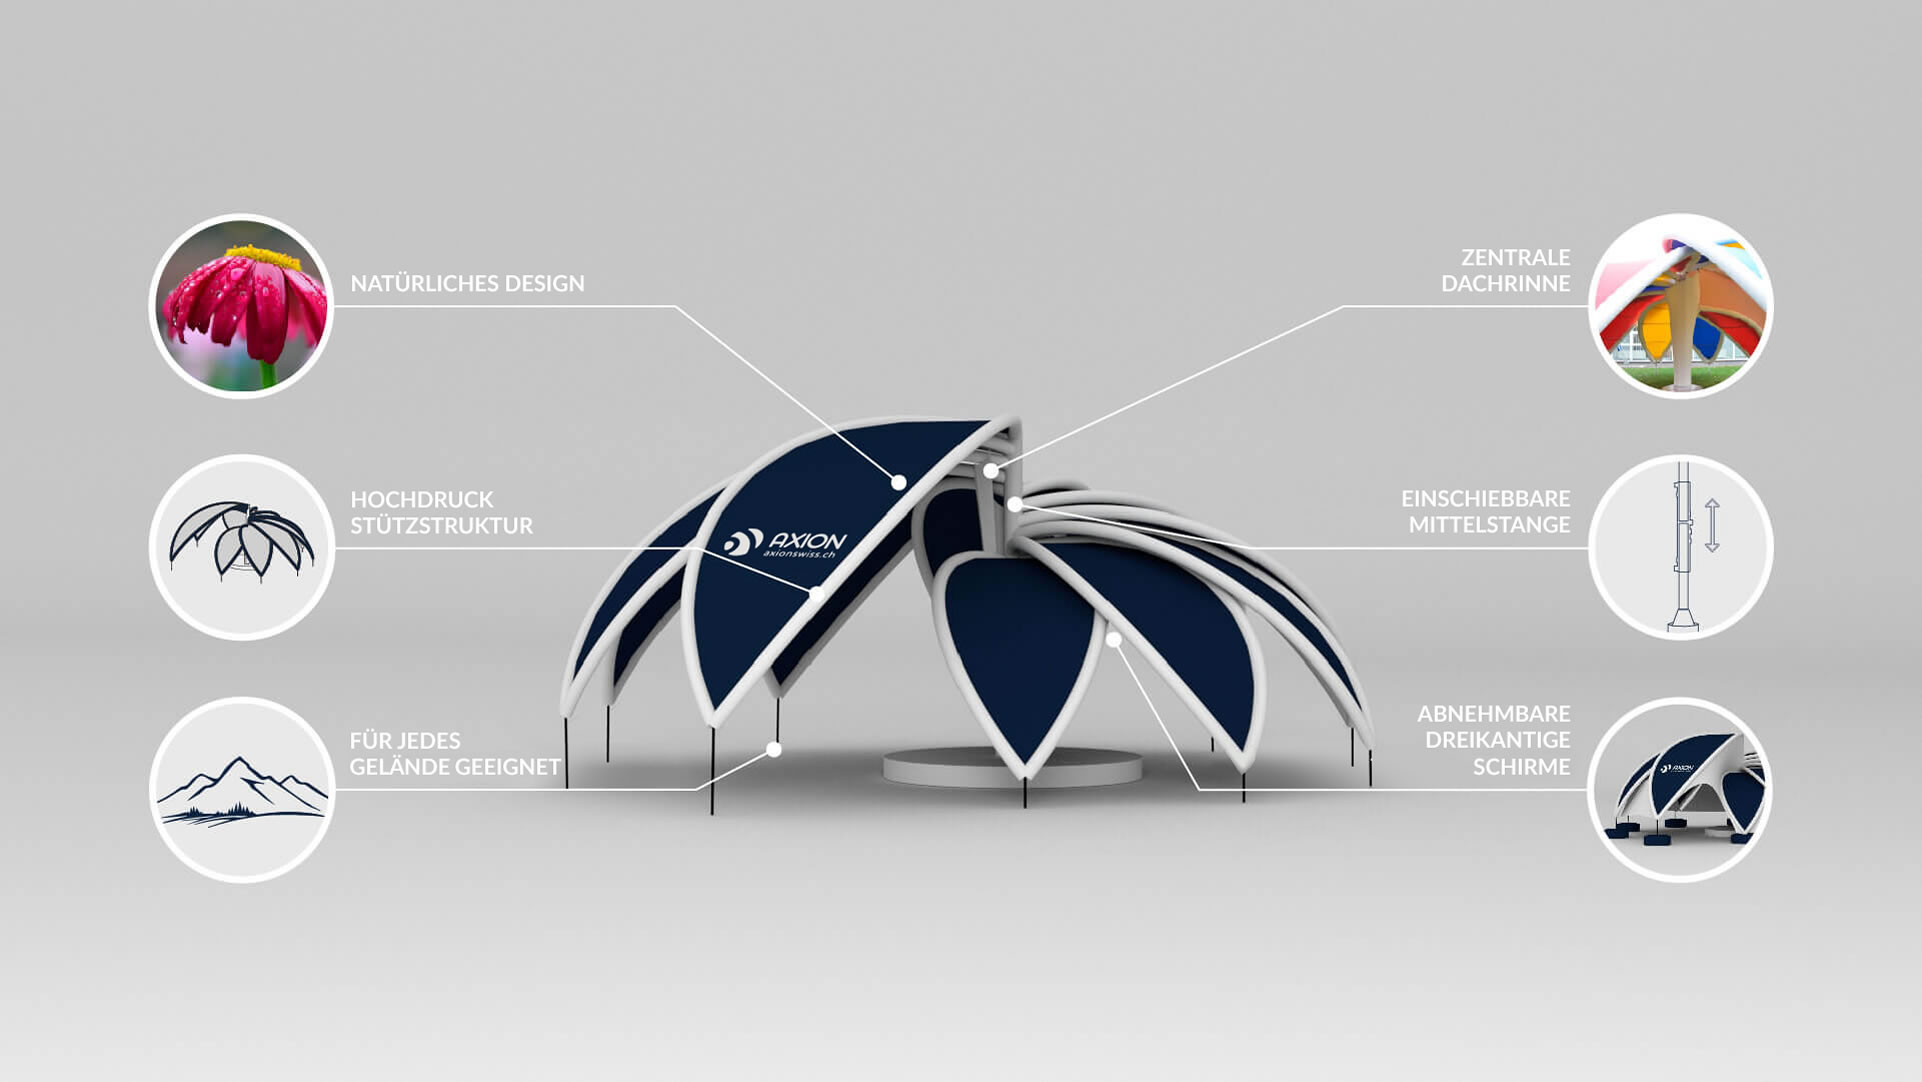 axion-flower-tent_main-feature